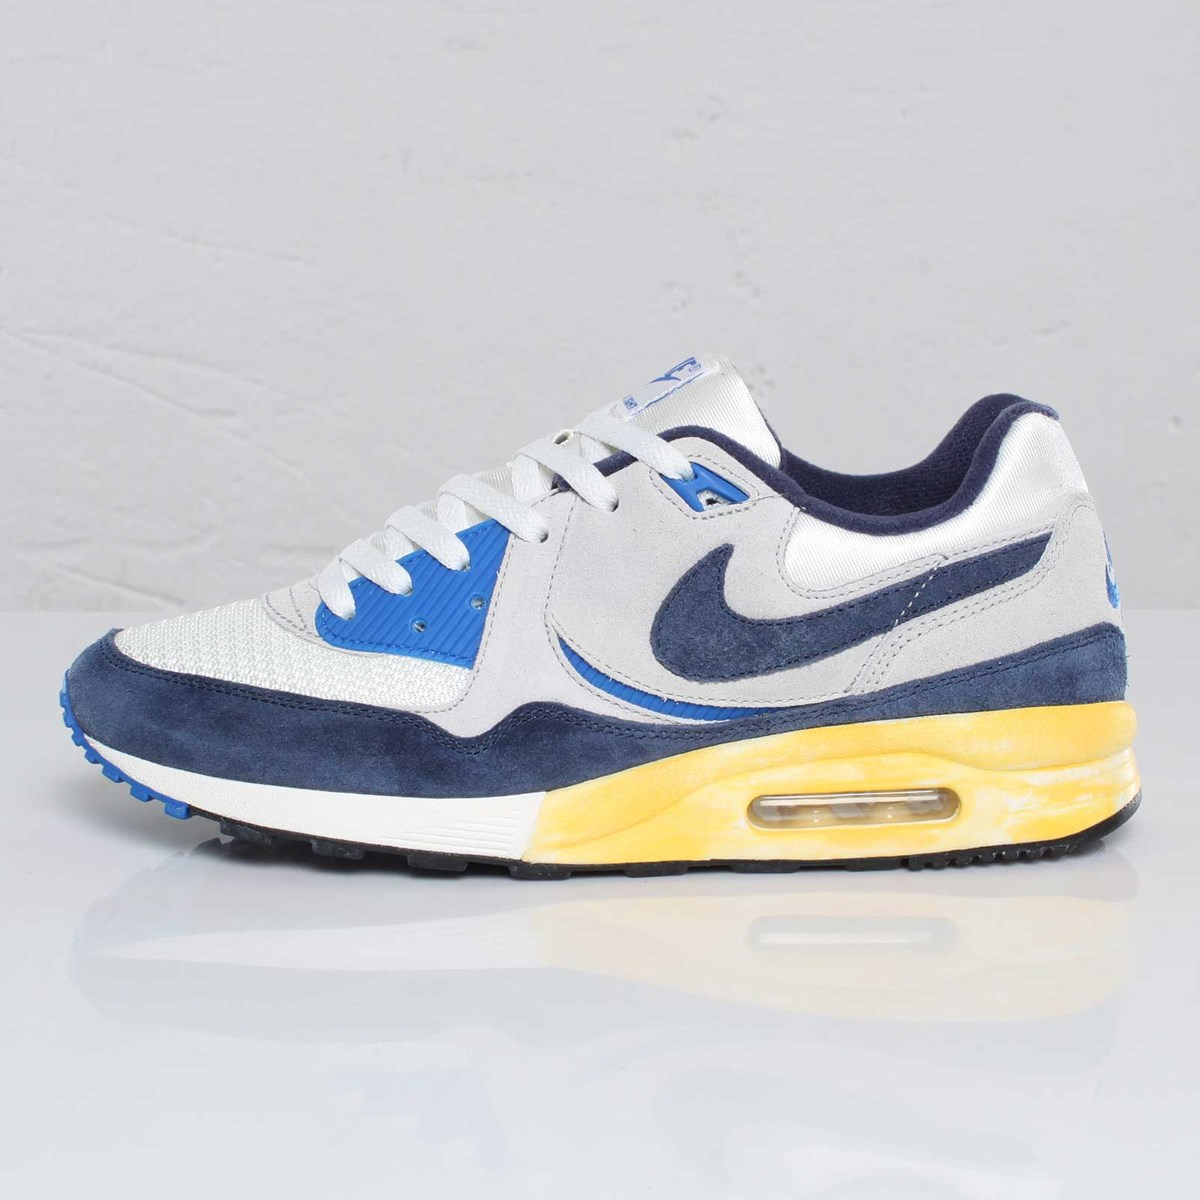 Nike Air Max Light VNTG QS 102806 Sneakersnstuff